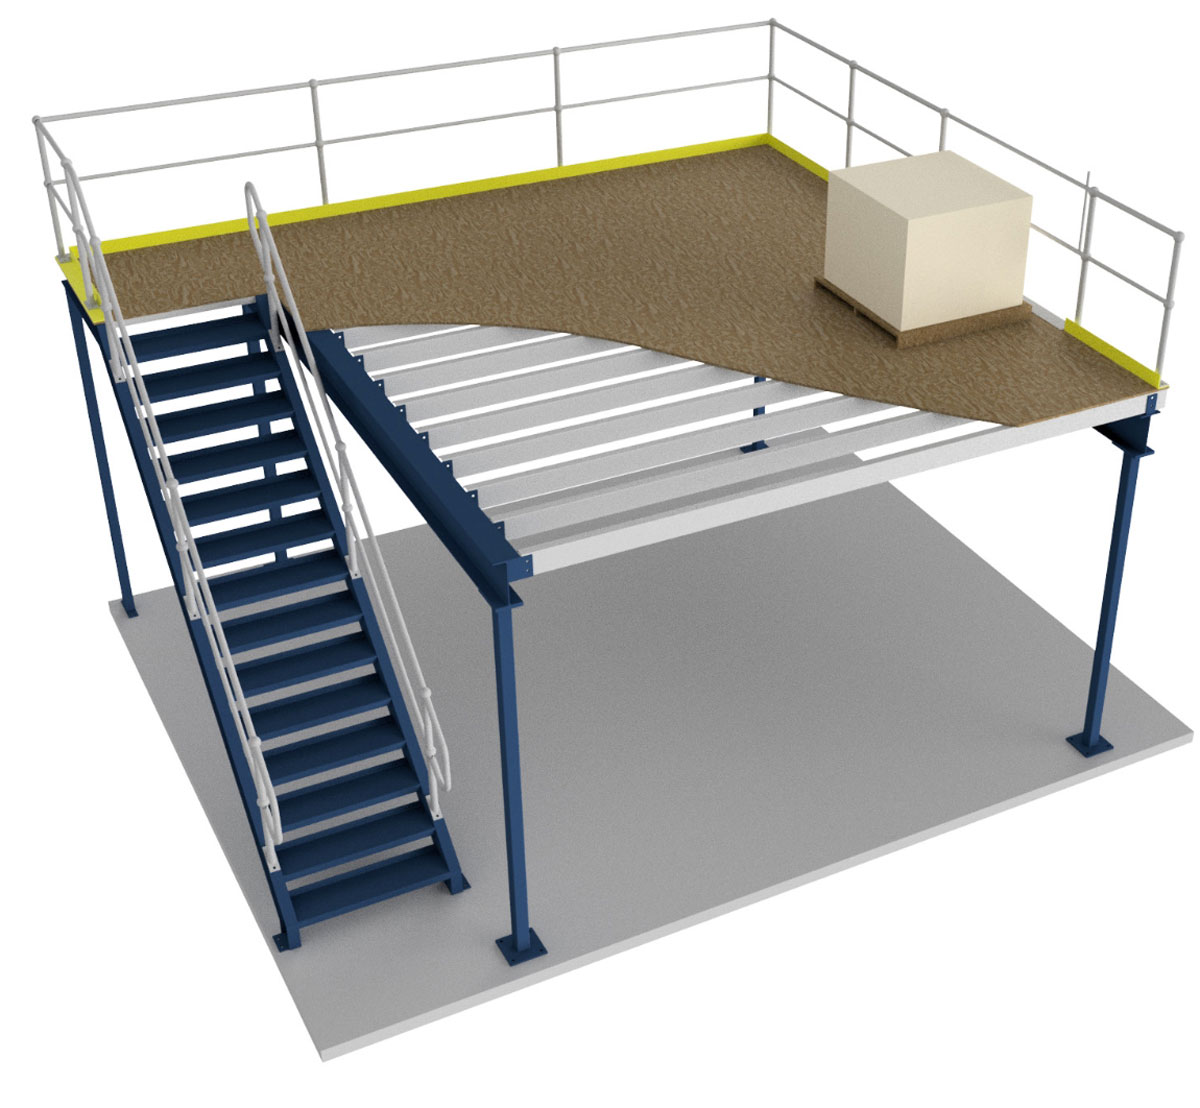 Mezzanine Flooring Options Carpet Vidalondon